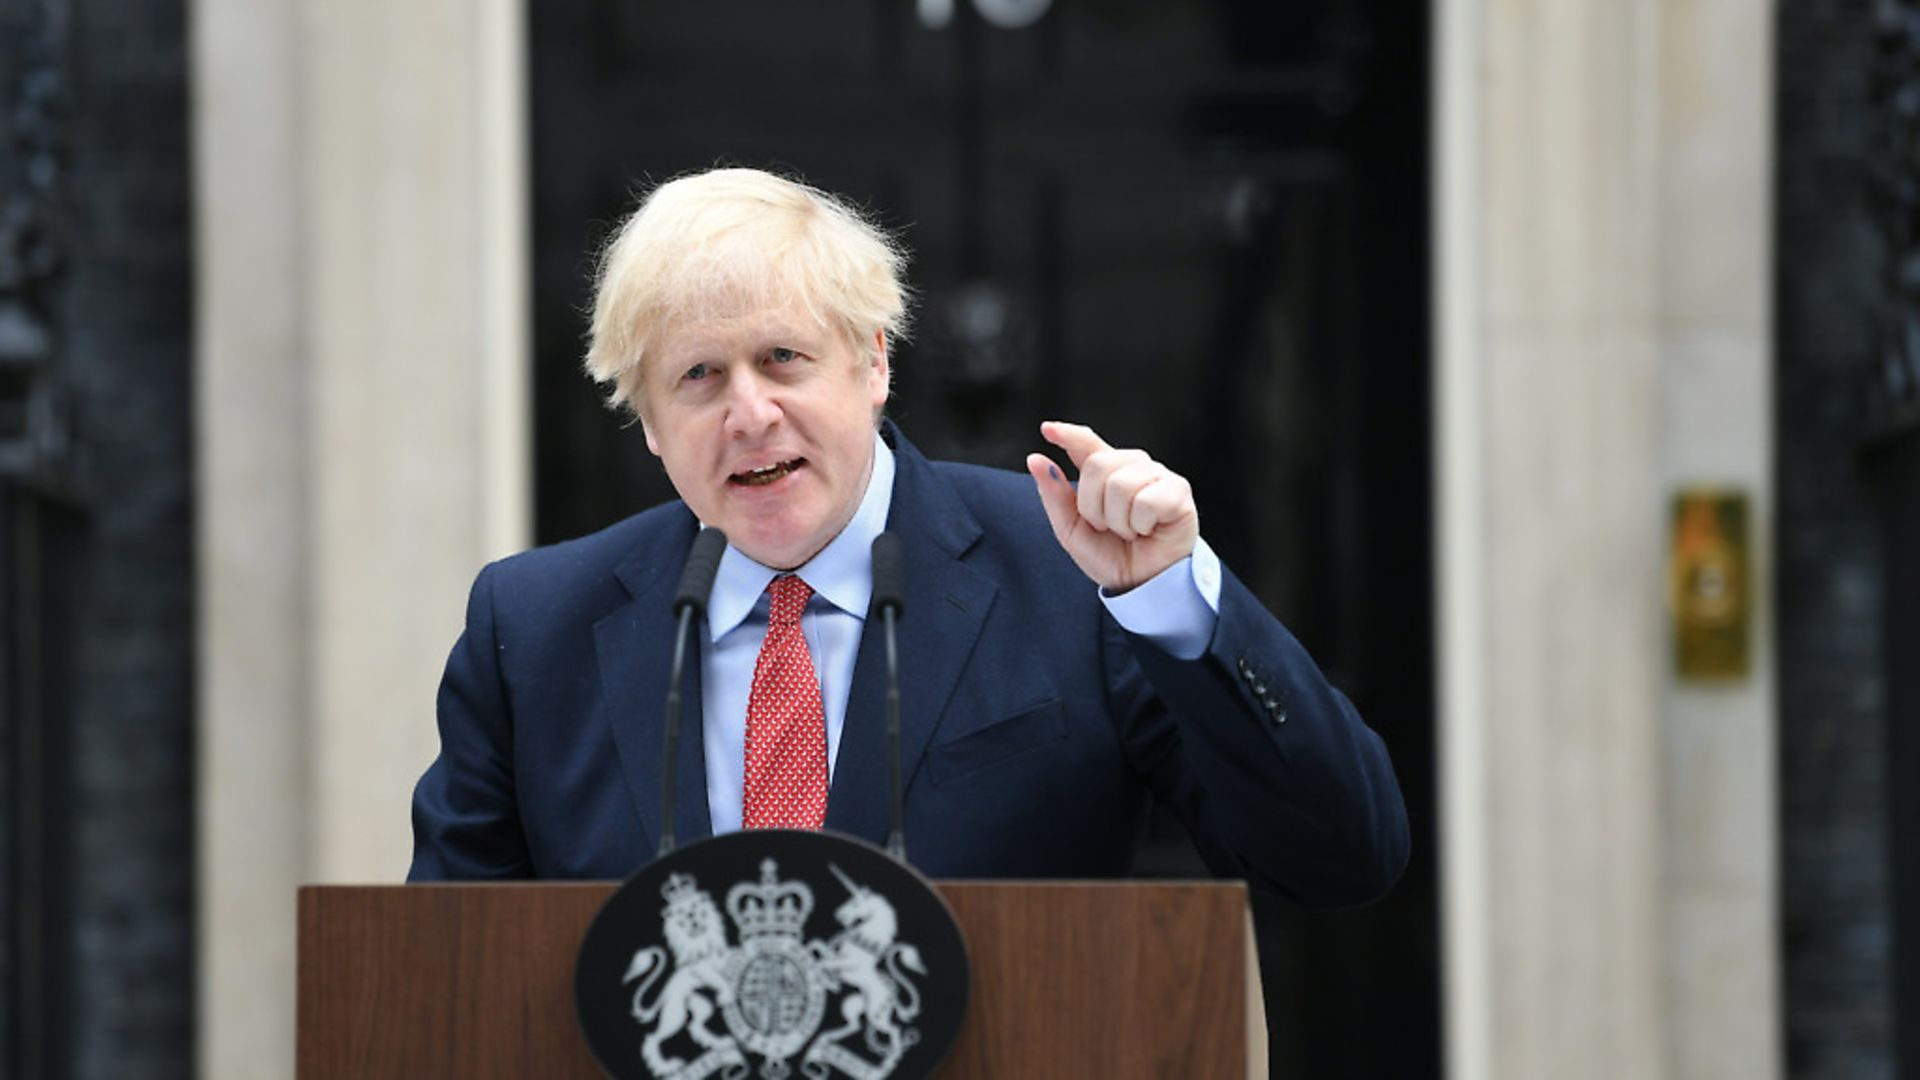 Prime Minister Boris Johnson makes a statement outside 10 Downing Street, London, as he resumes working after spending two weeks recovering from Covid-19. Picture: Stefan Rousseau/PA - Credit: PA